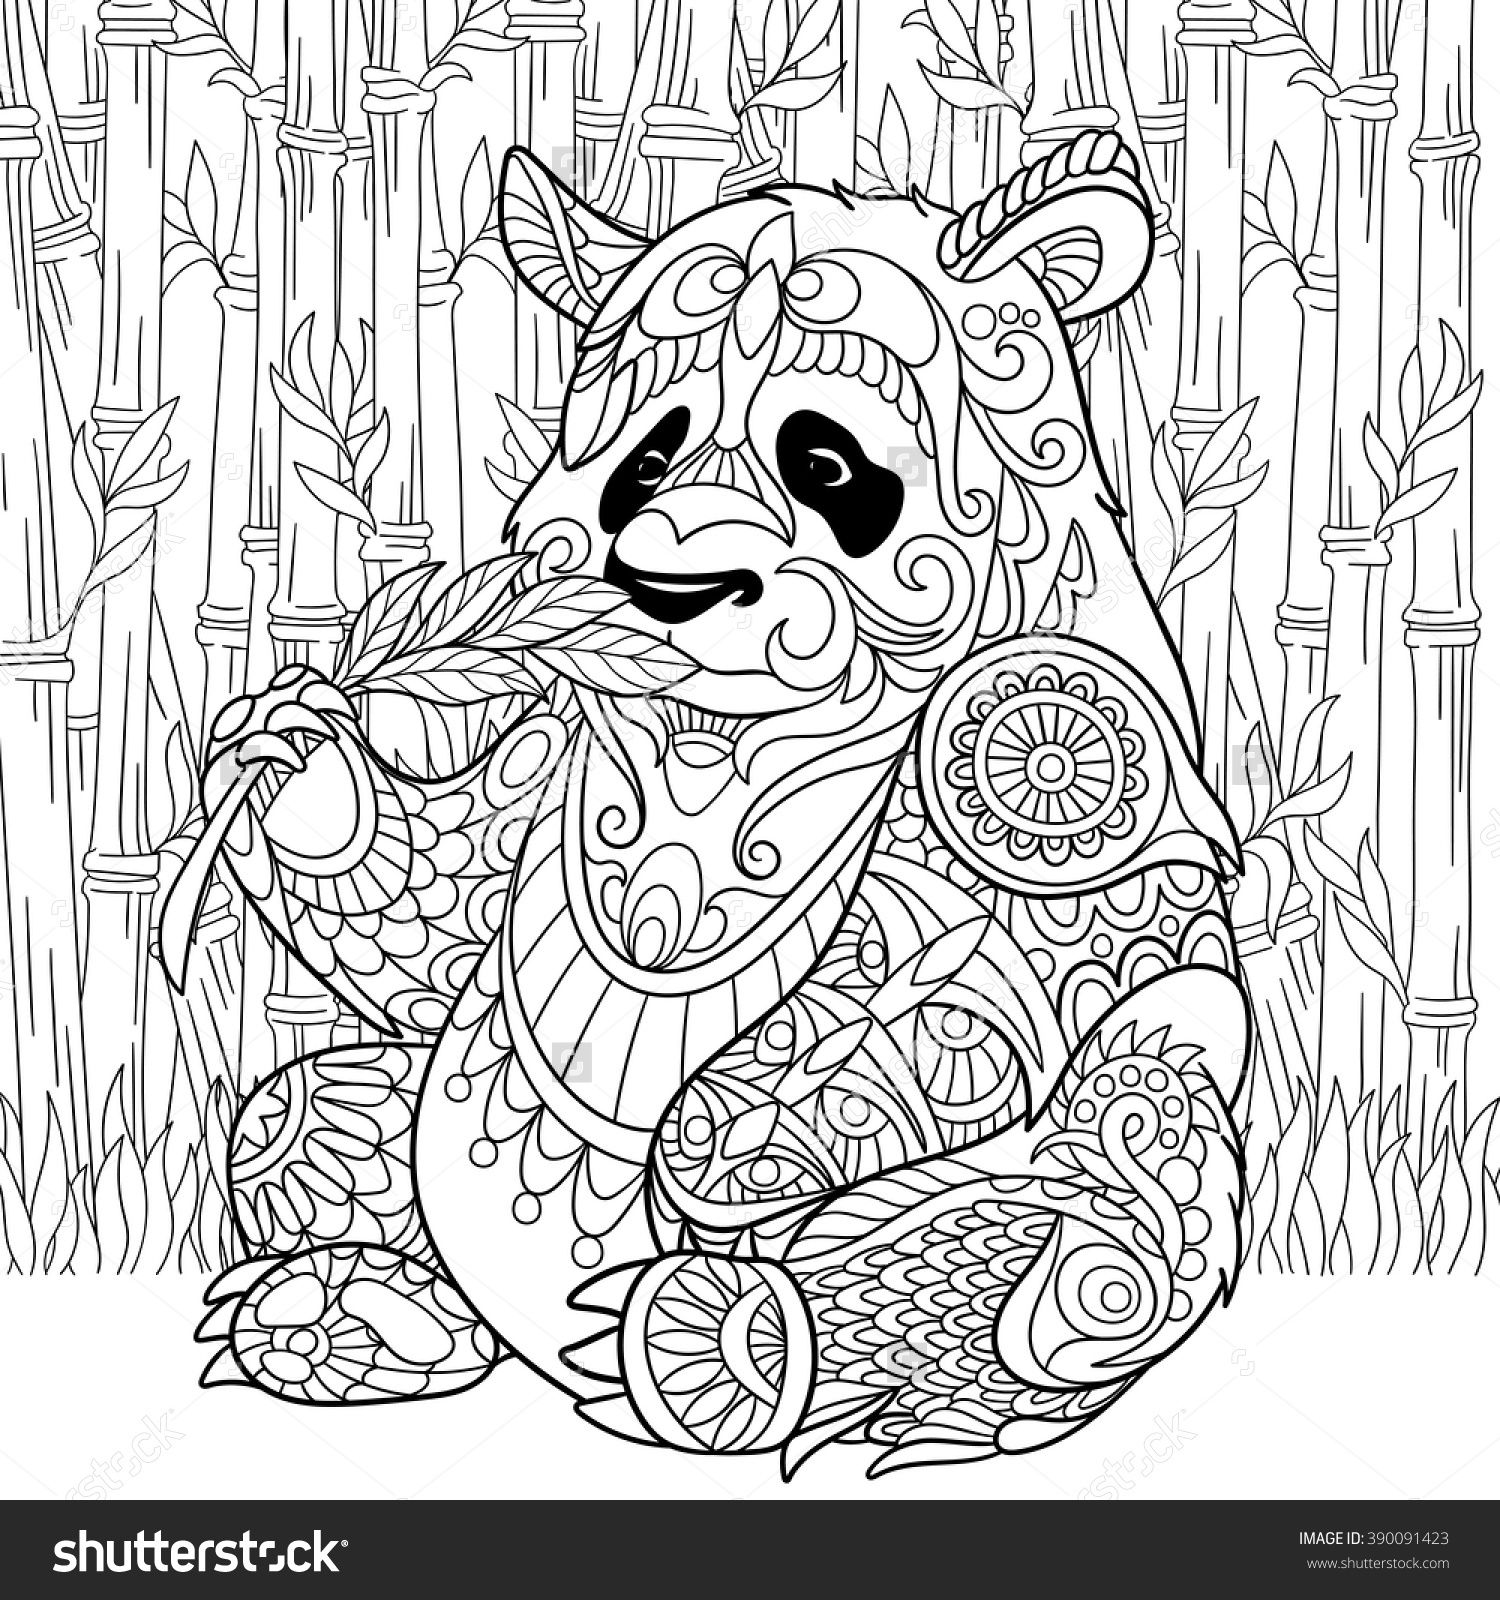 Zentangle Stylized Cartoon Panda Sitting Among Bamboo Stems. Sketch For  Adult Antistress Coloring Page. Hand Drawn Doodle, Zentangle, Floral Design  Elements ...